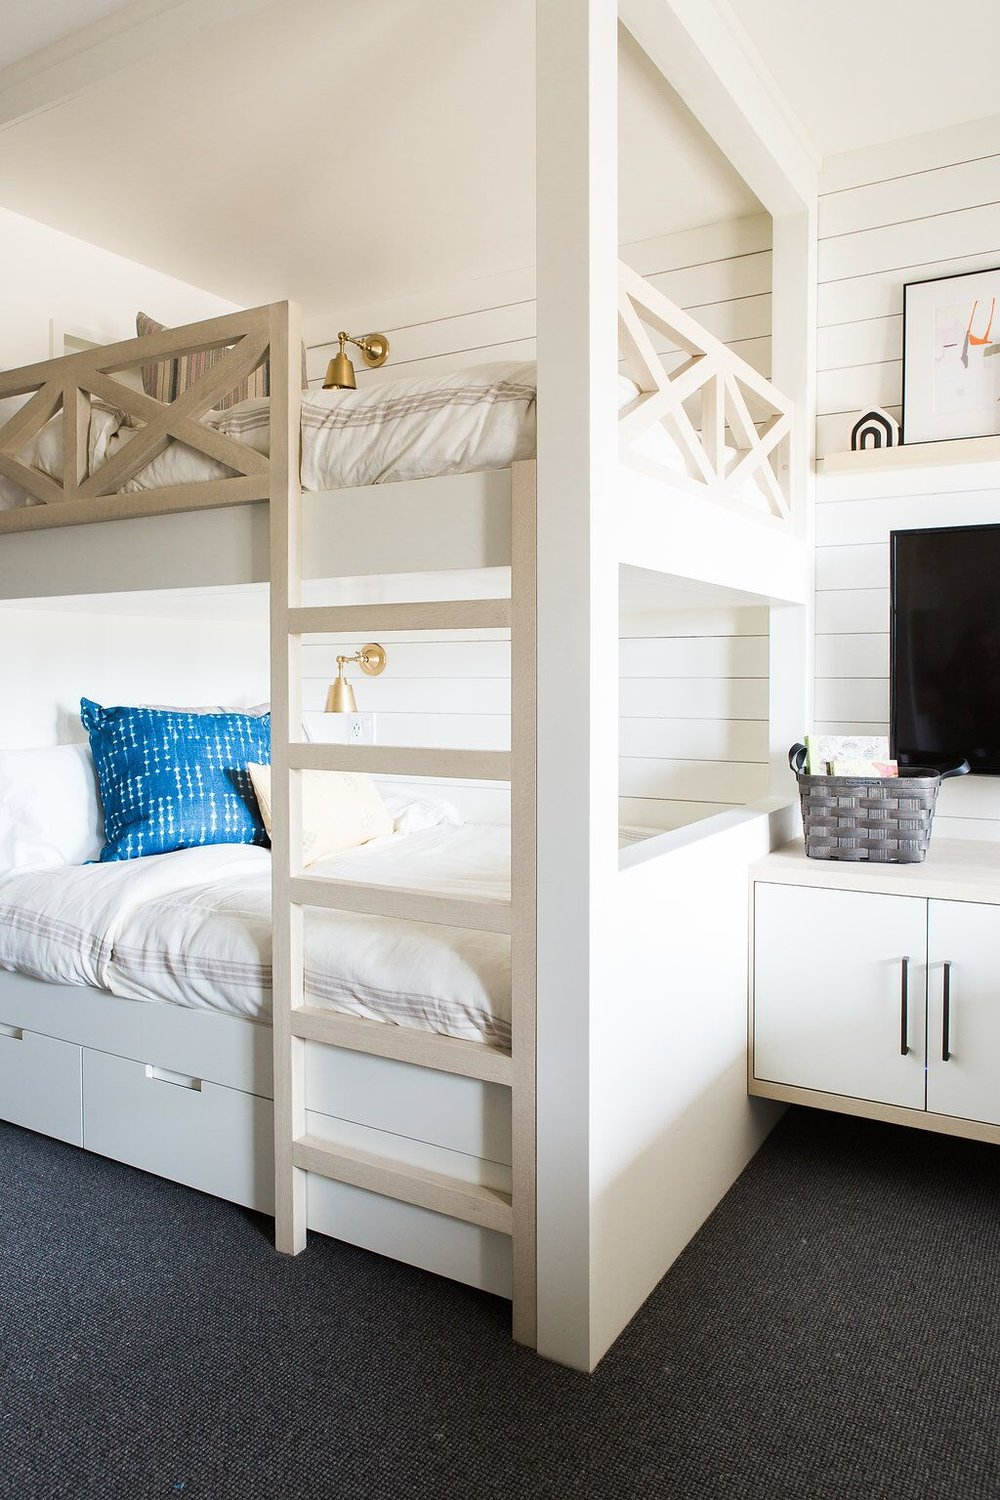 Kids bedroom with built-in bunk beds with shiplap walls